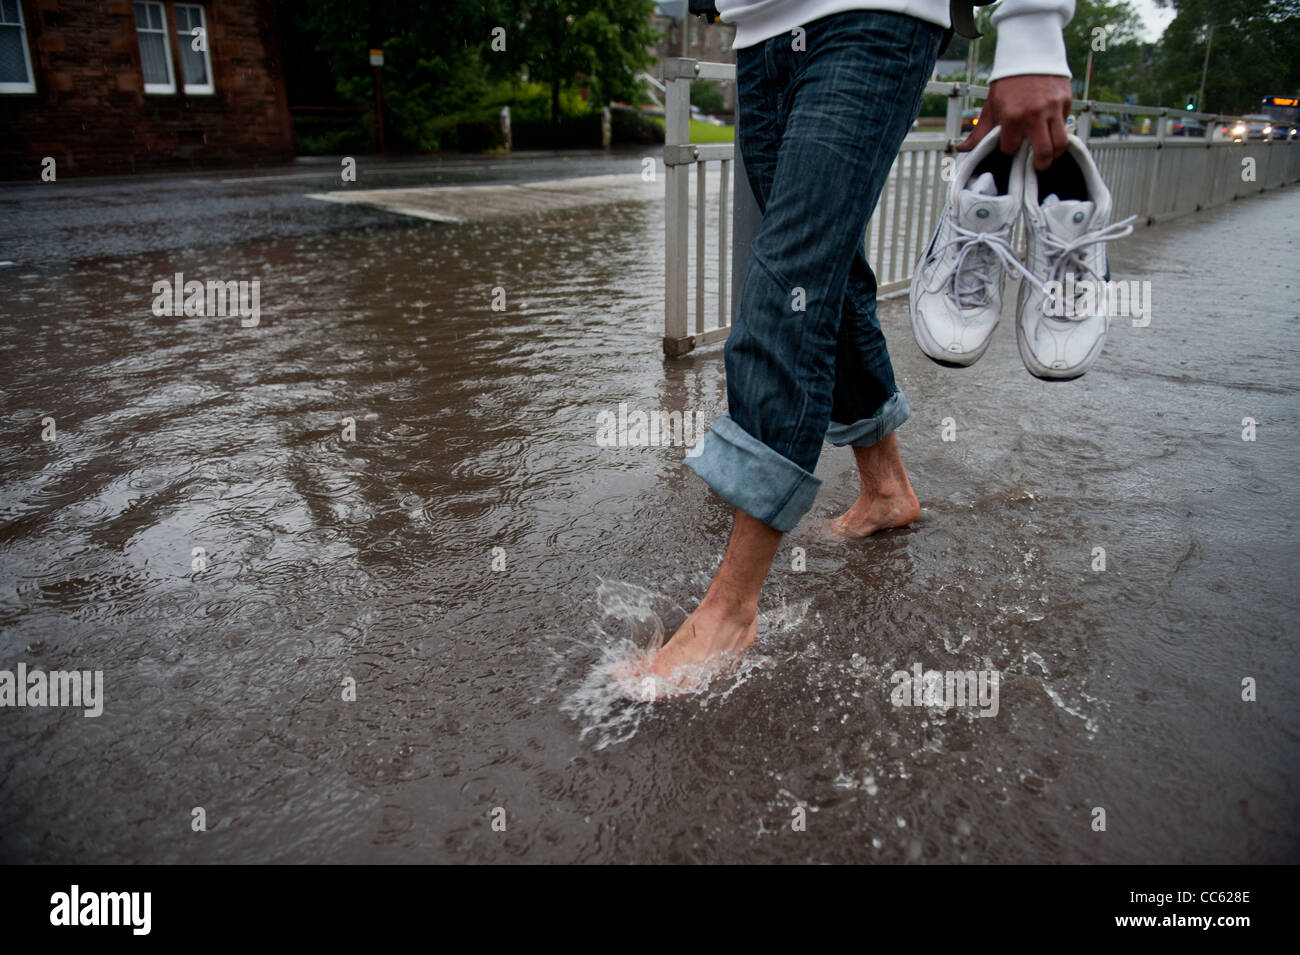 a passer by carries there shoes through a flooded part of town after